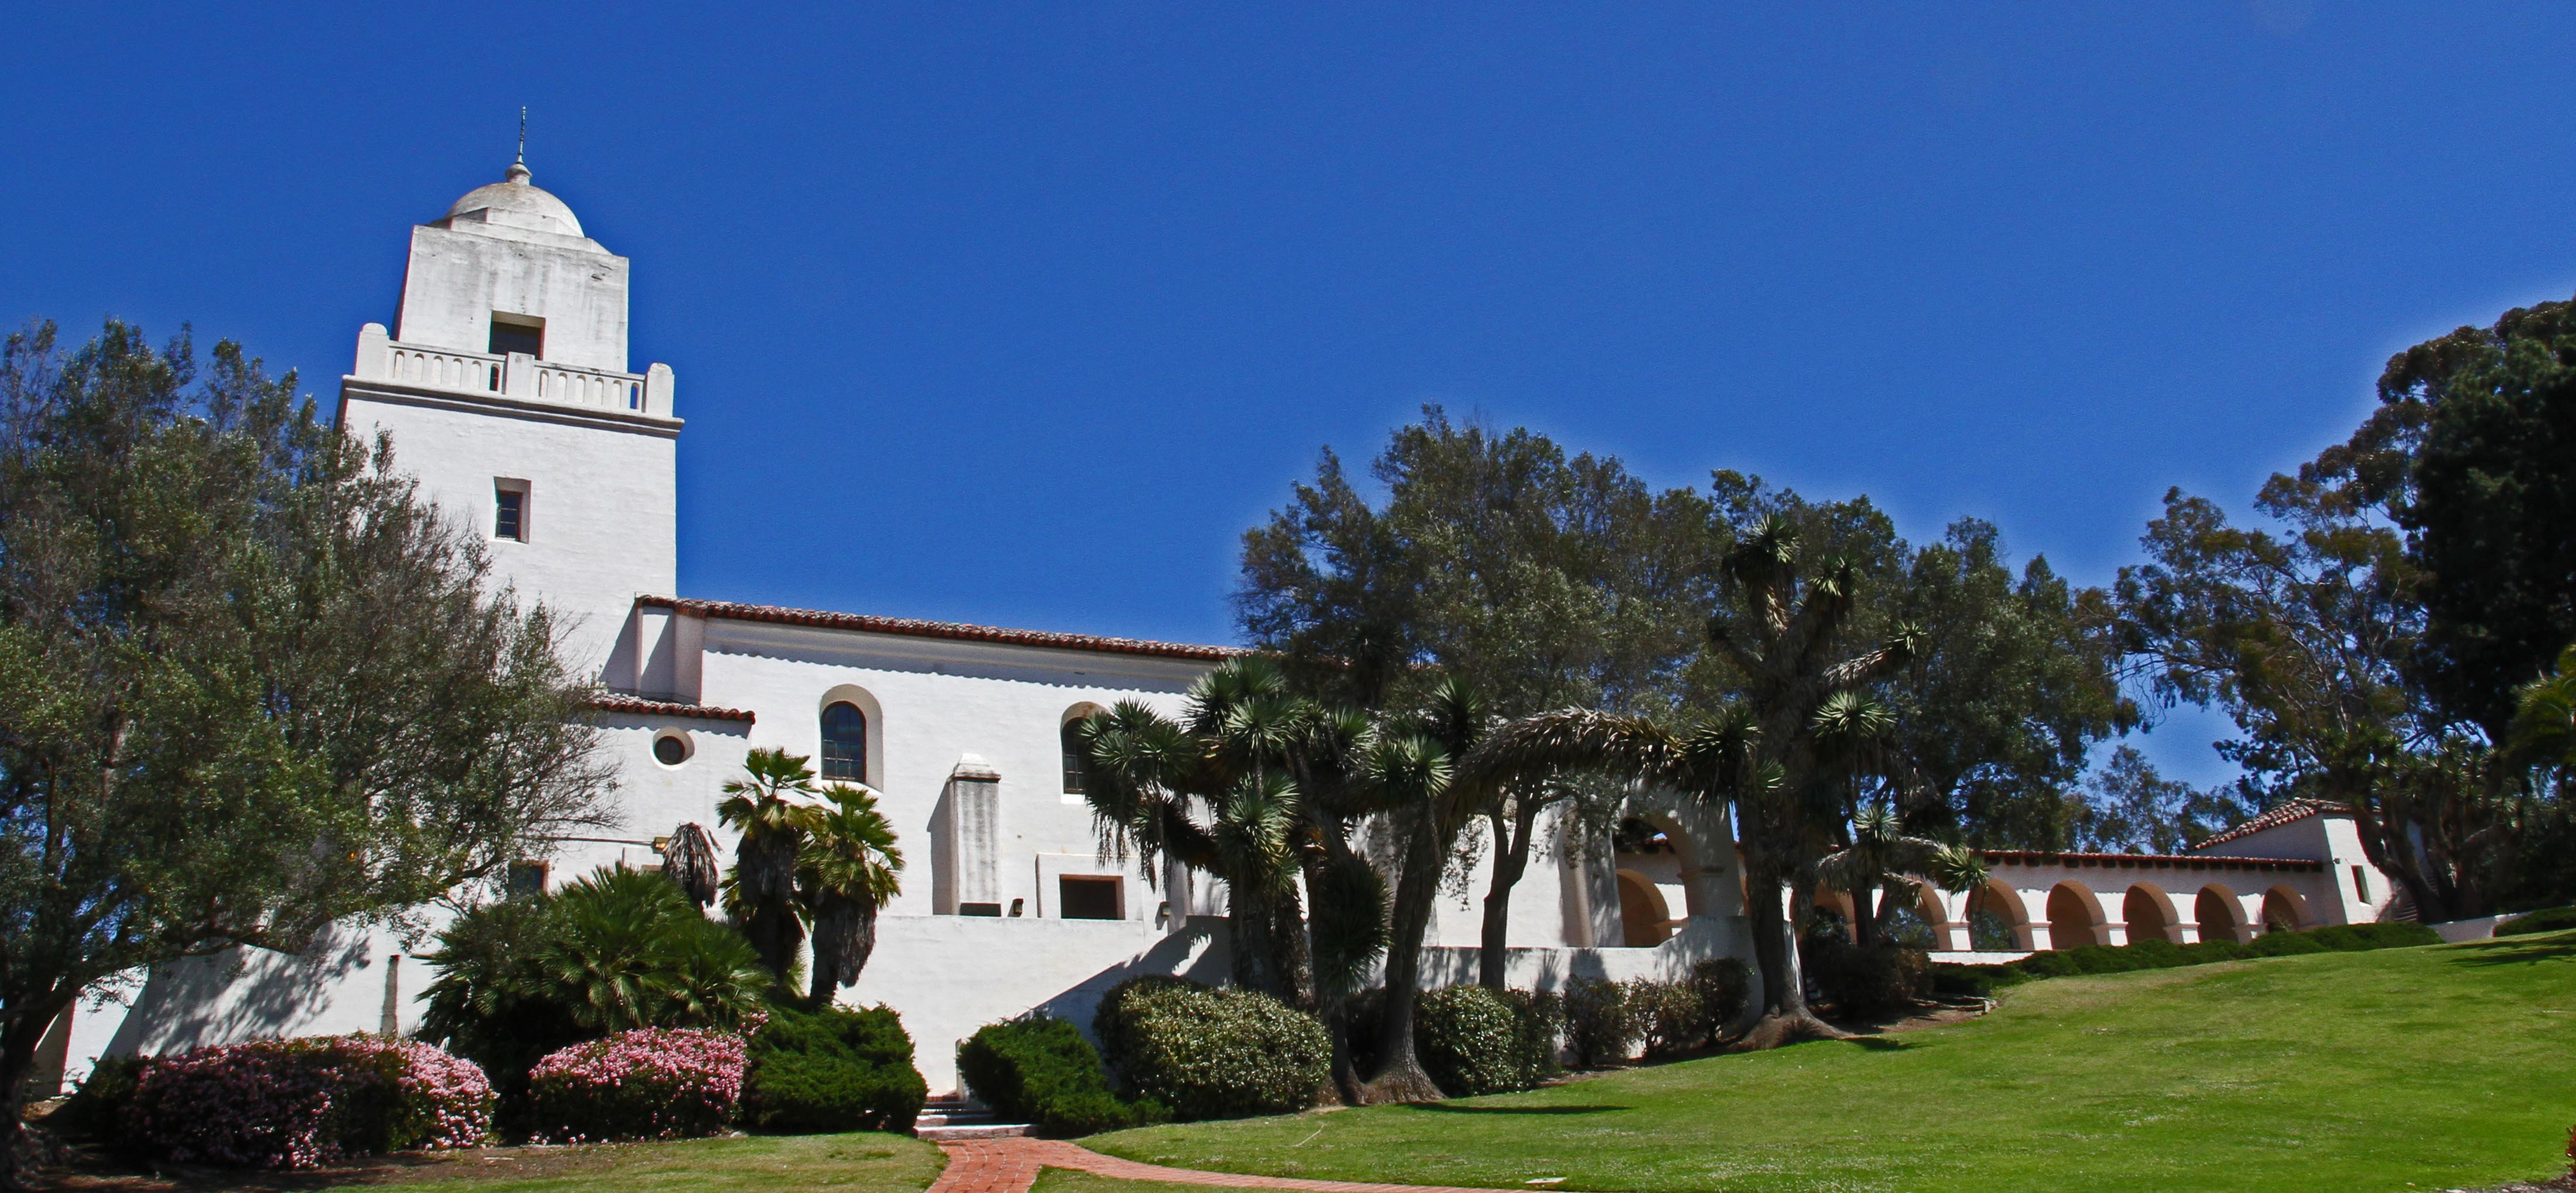 San Diego Chinese Historical Museum San Diego, Mission Basilica San Diego de Alcala | Sailing with Patty